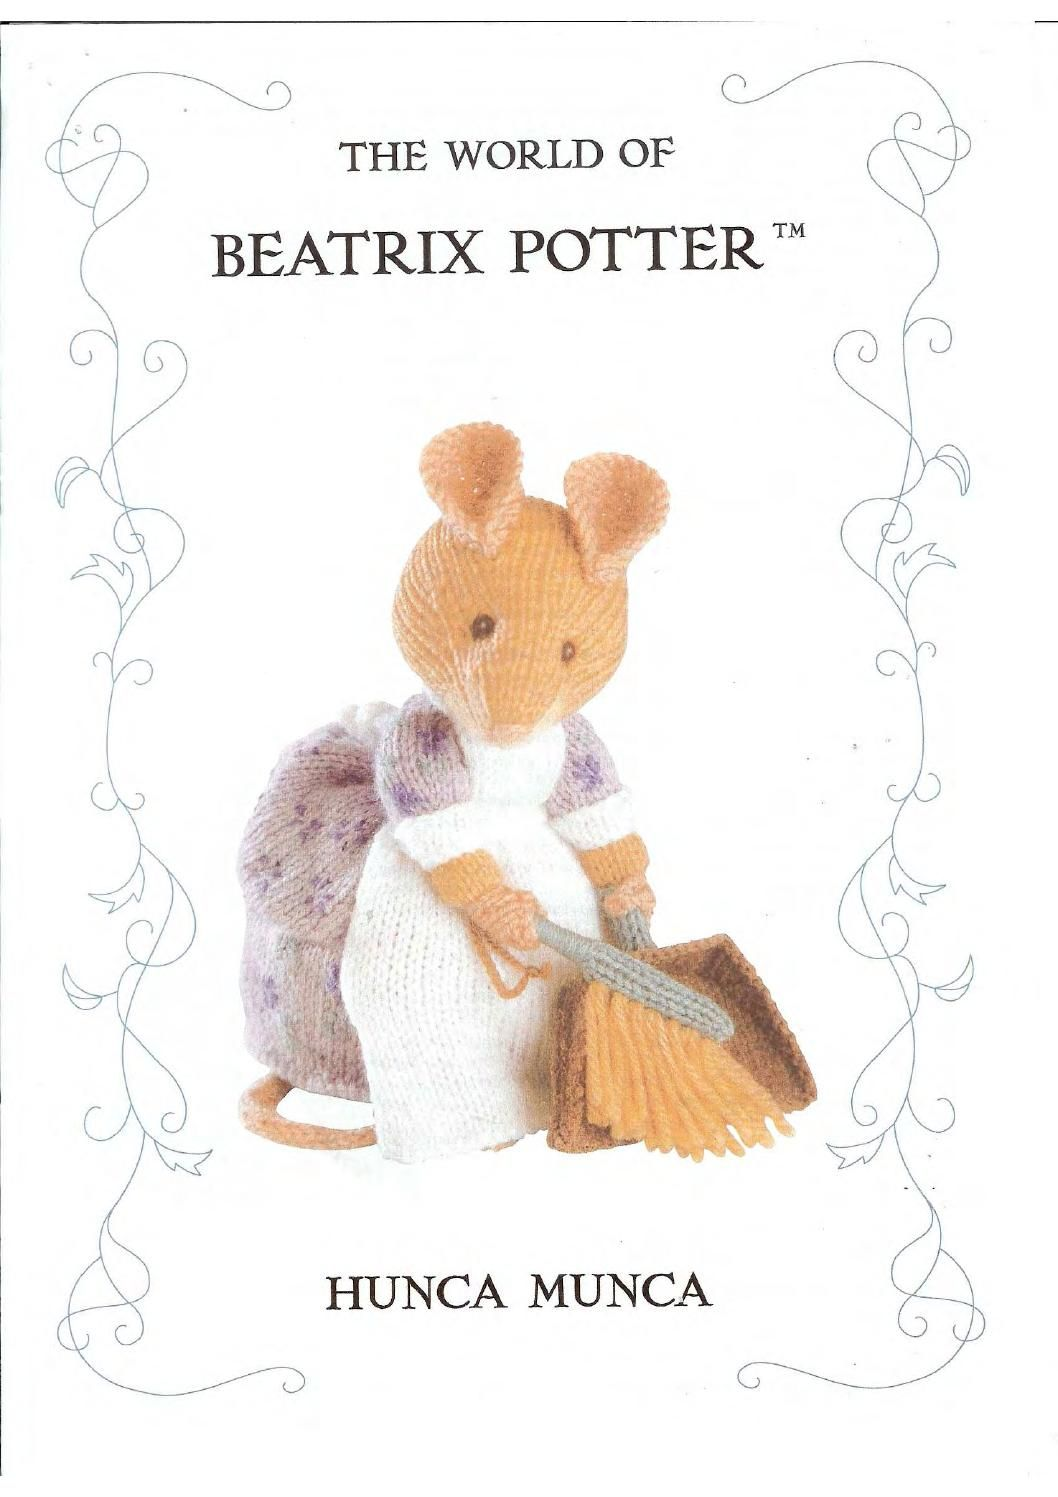 Knit the world of beatrix potter hunca munca by FREE Magazine Inside ...